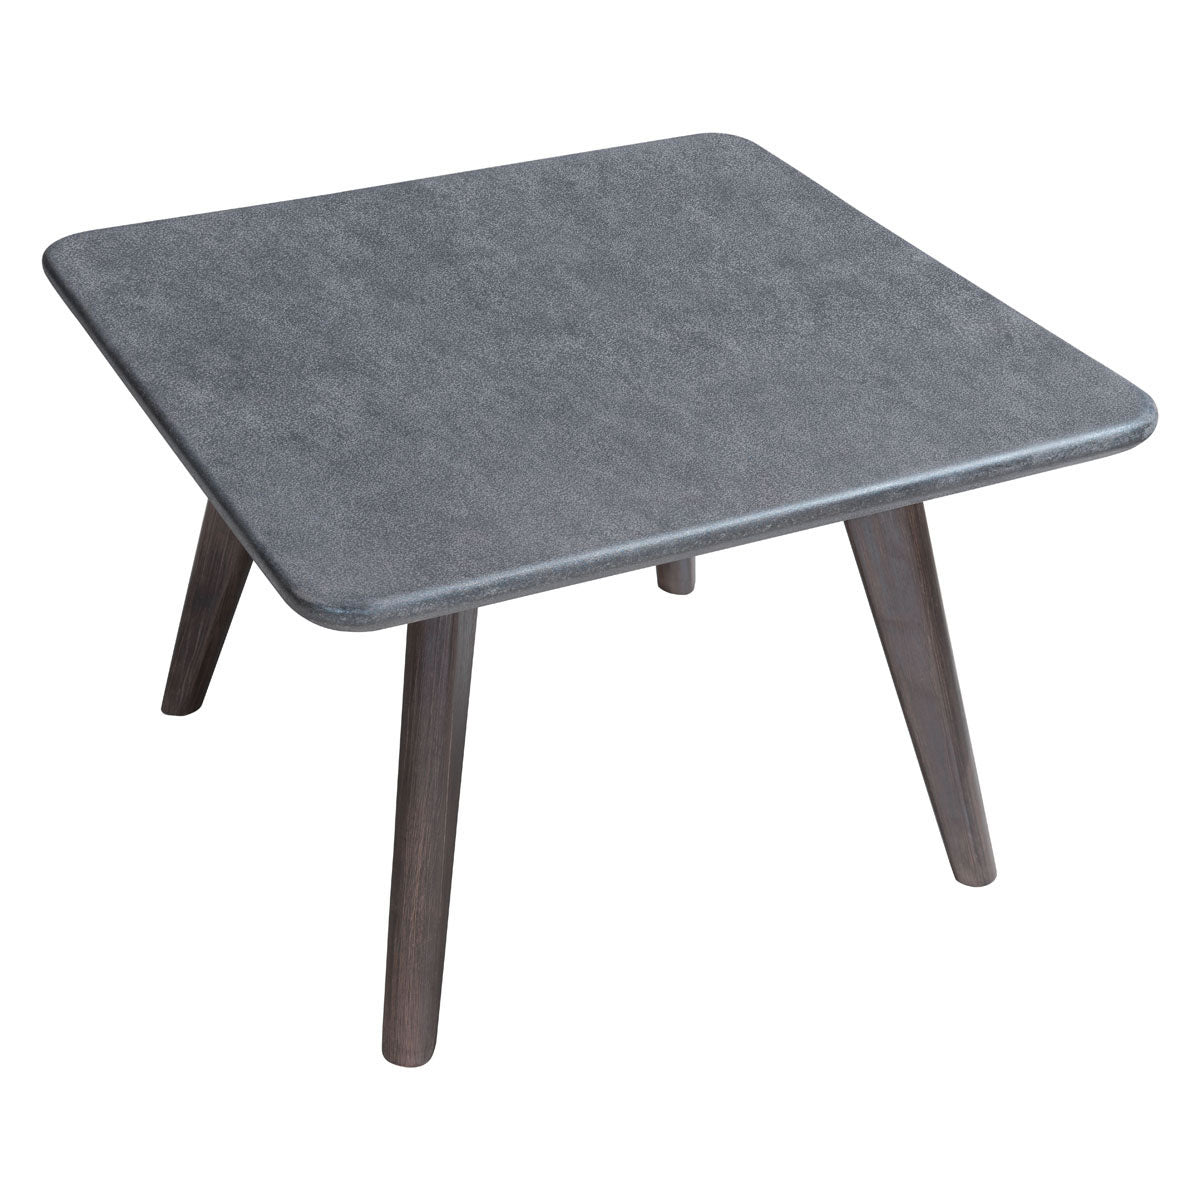 Taiga Coffe Table Cement